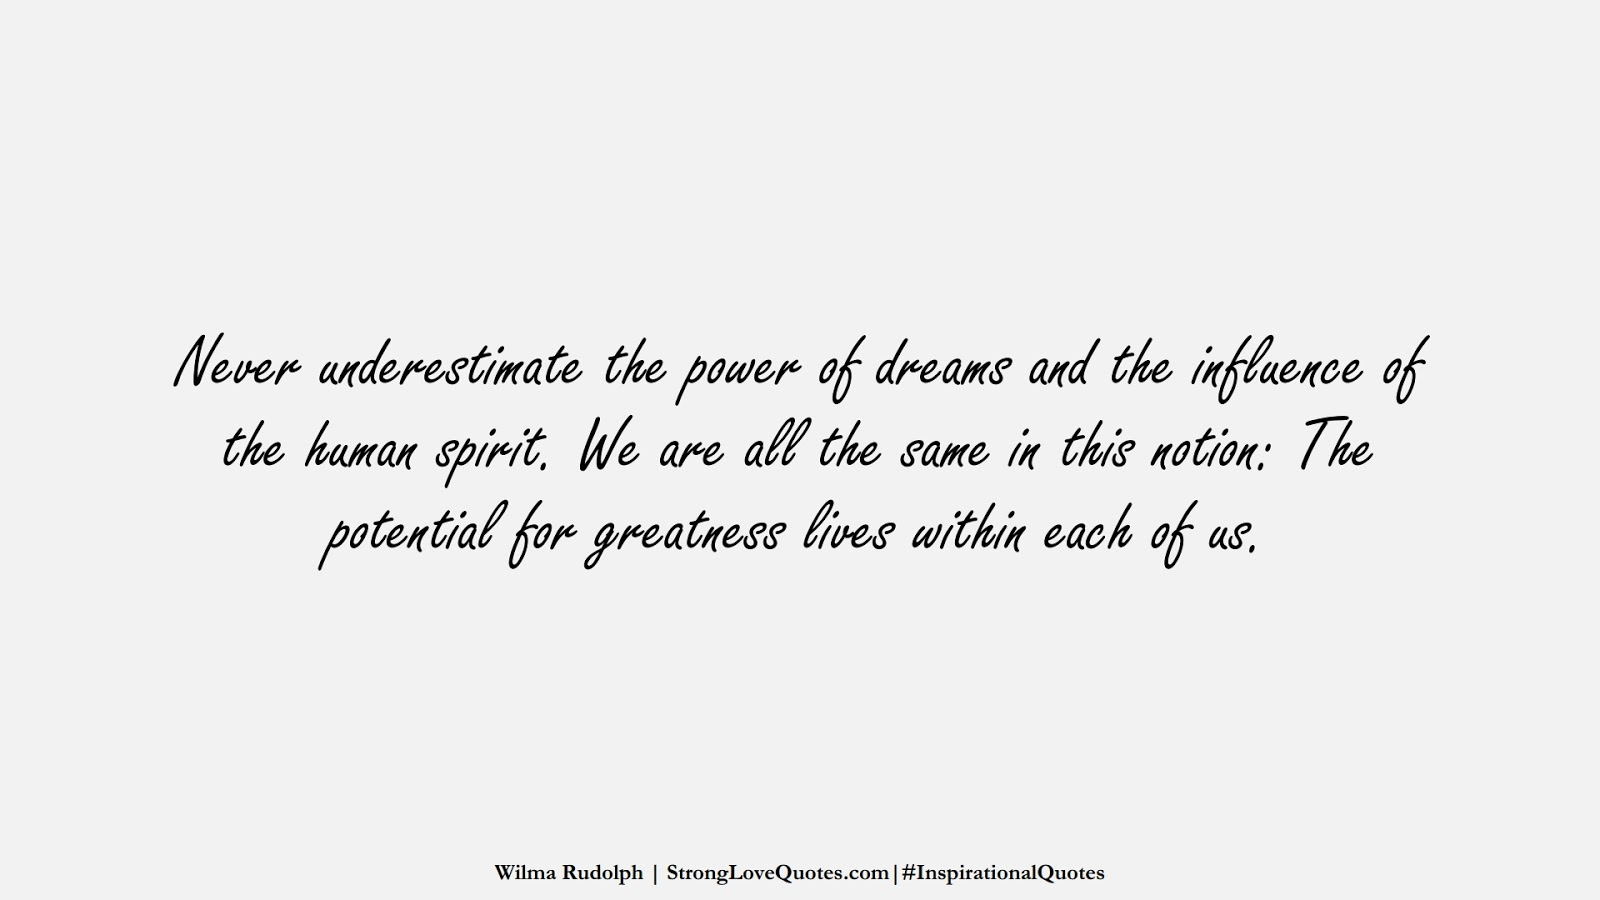 Never underestimate the power of dreams and the influence of the human spirit. We are all the same in this notion: The potential for greatness lives within each of us. (Wilma Rudolph);  #InspirationalQuotes